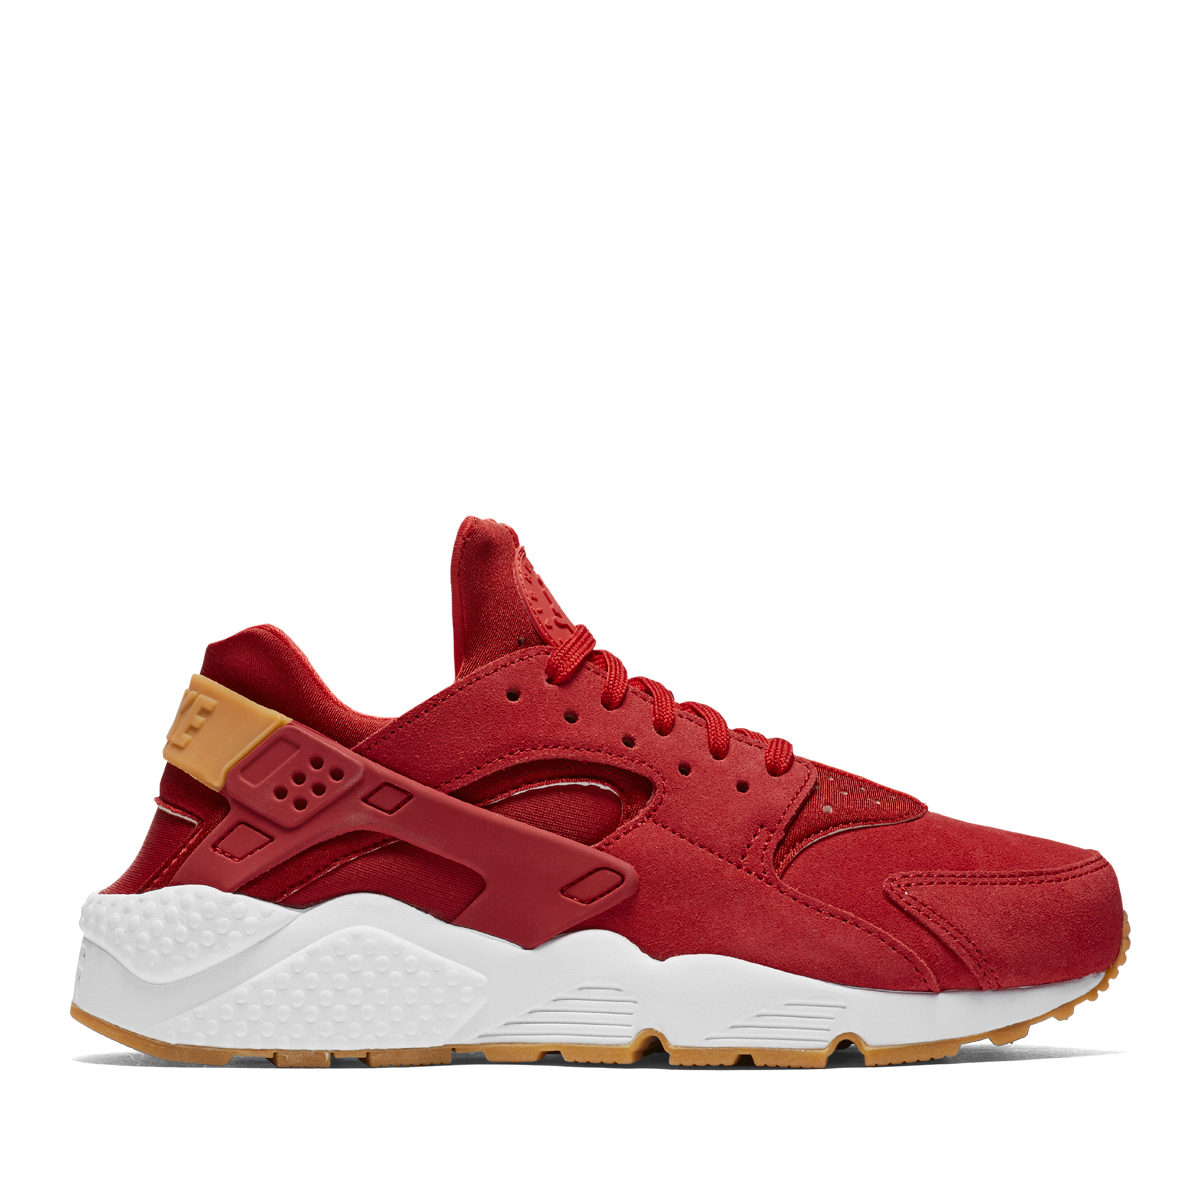 86f73c181a2ae NIKE WMNS AIR HUARACHE RUN SD (ナイキウィメンズエアハラチラン SD) GYM RED GYM RED-SPEED RED  18SP-I